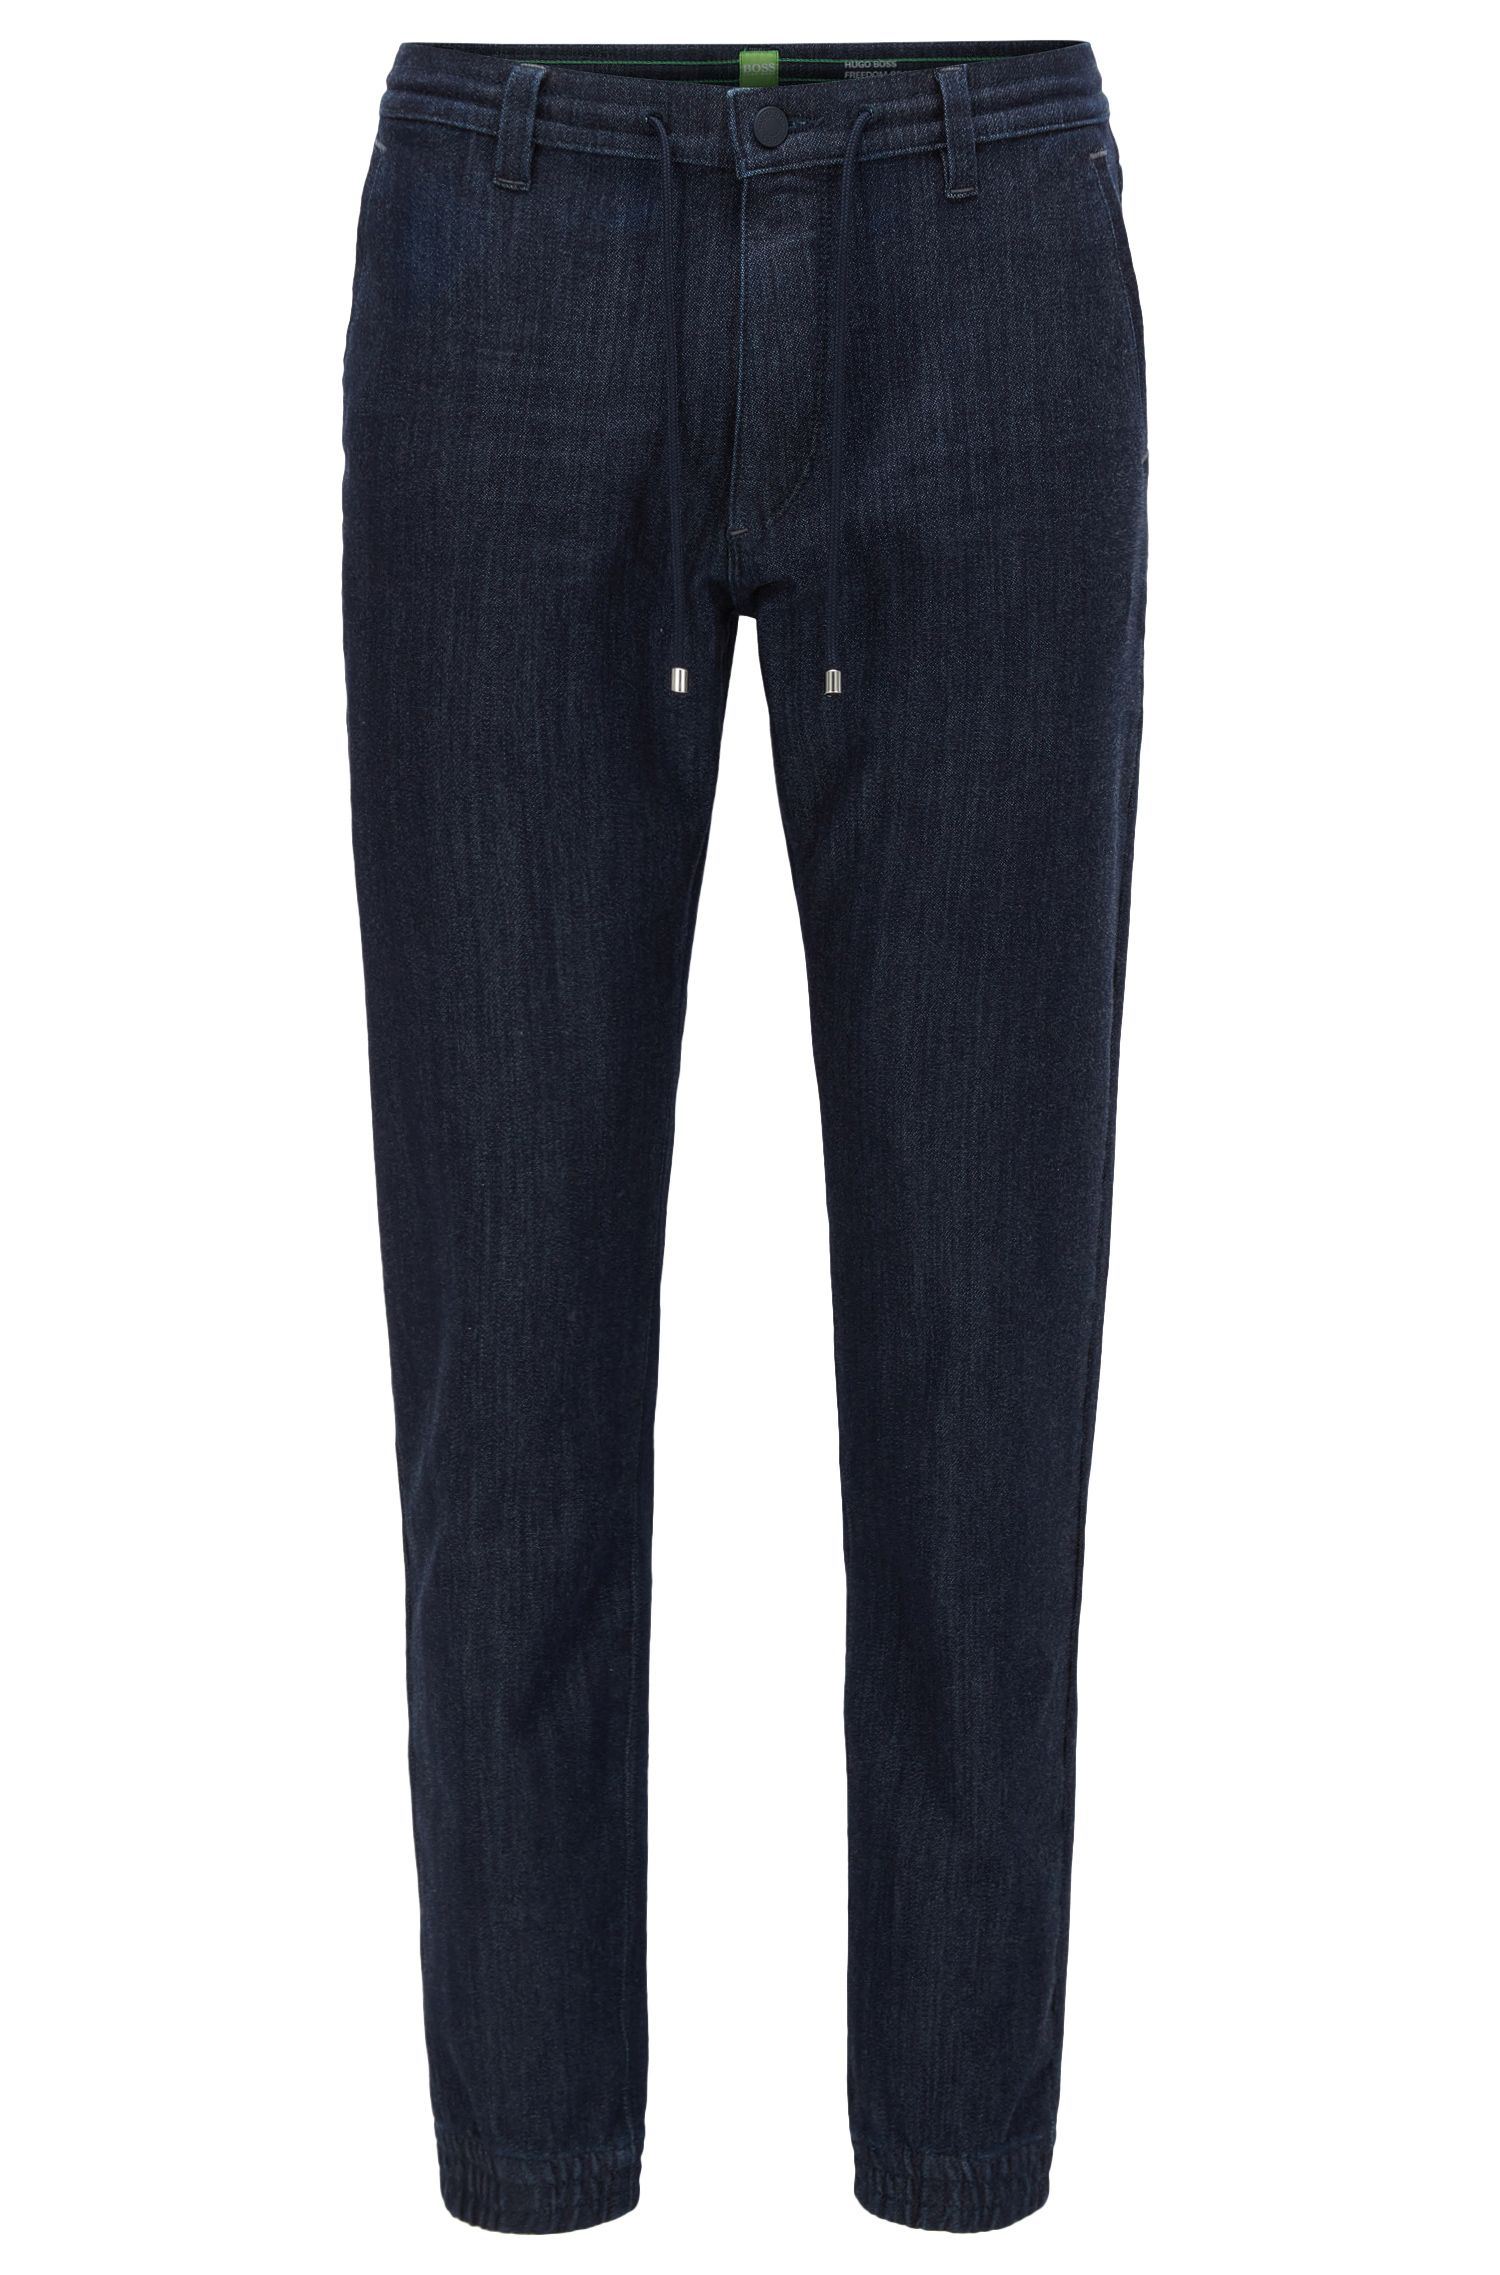 Pantalones tapered fit en denim de punto